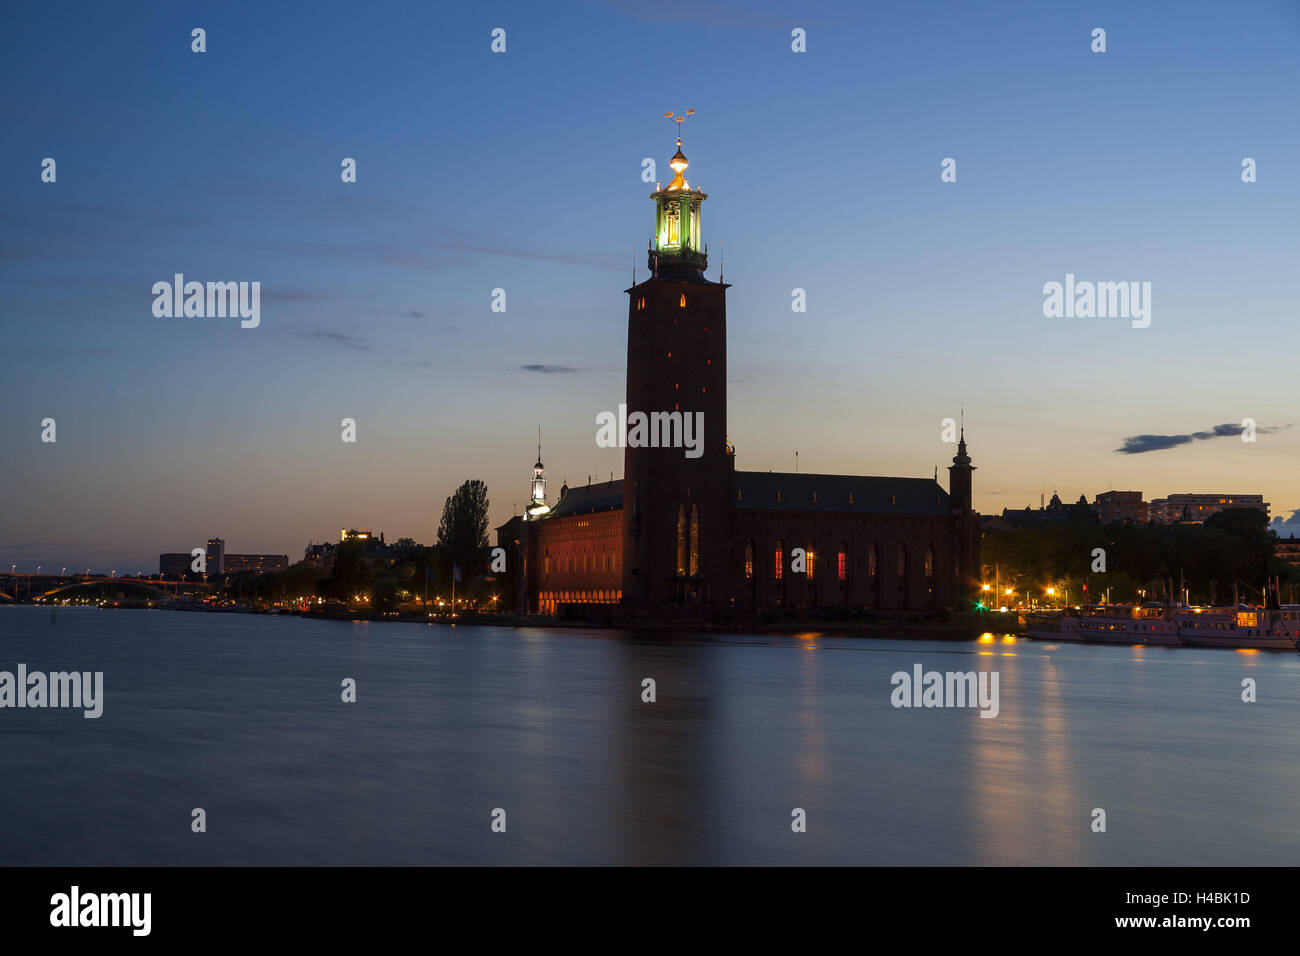 Sweden, Stockholm, city hall, Stadhuset, dusk - Stock Image